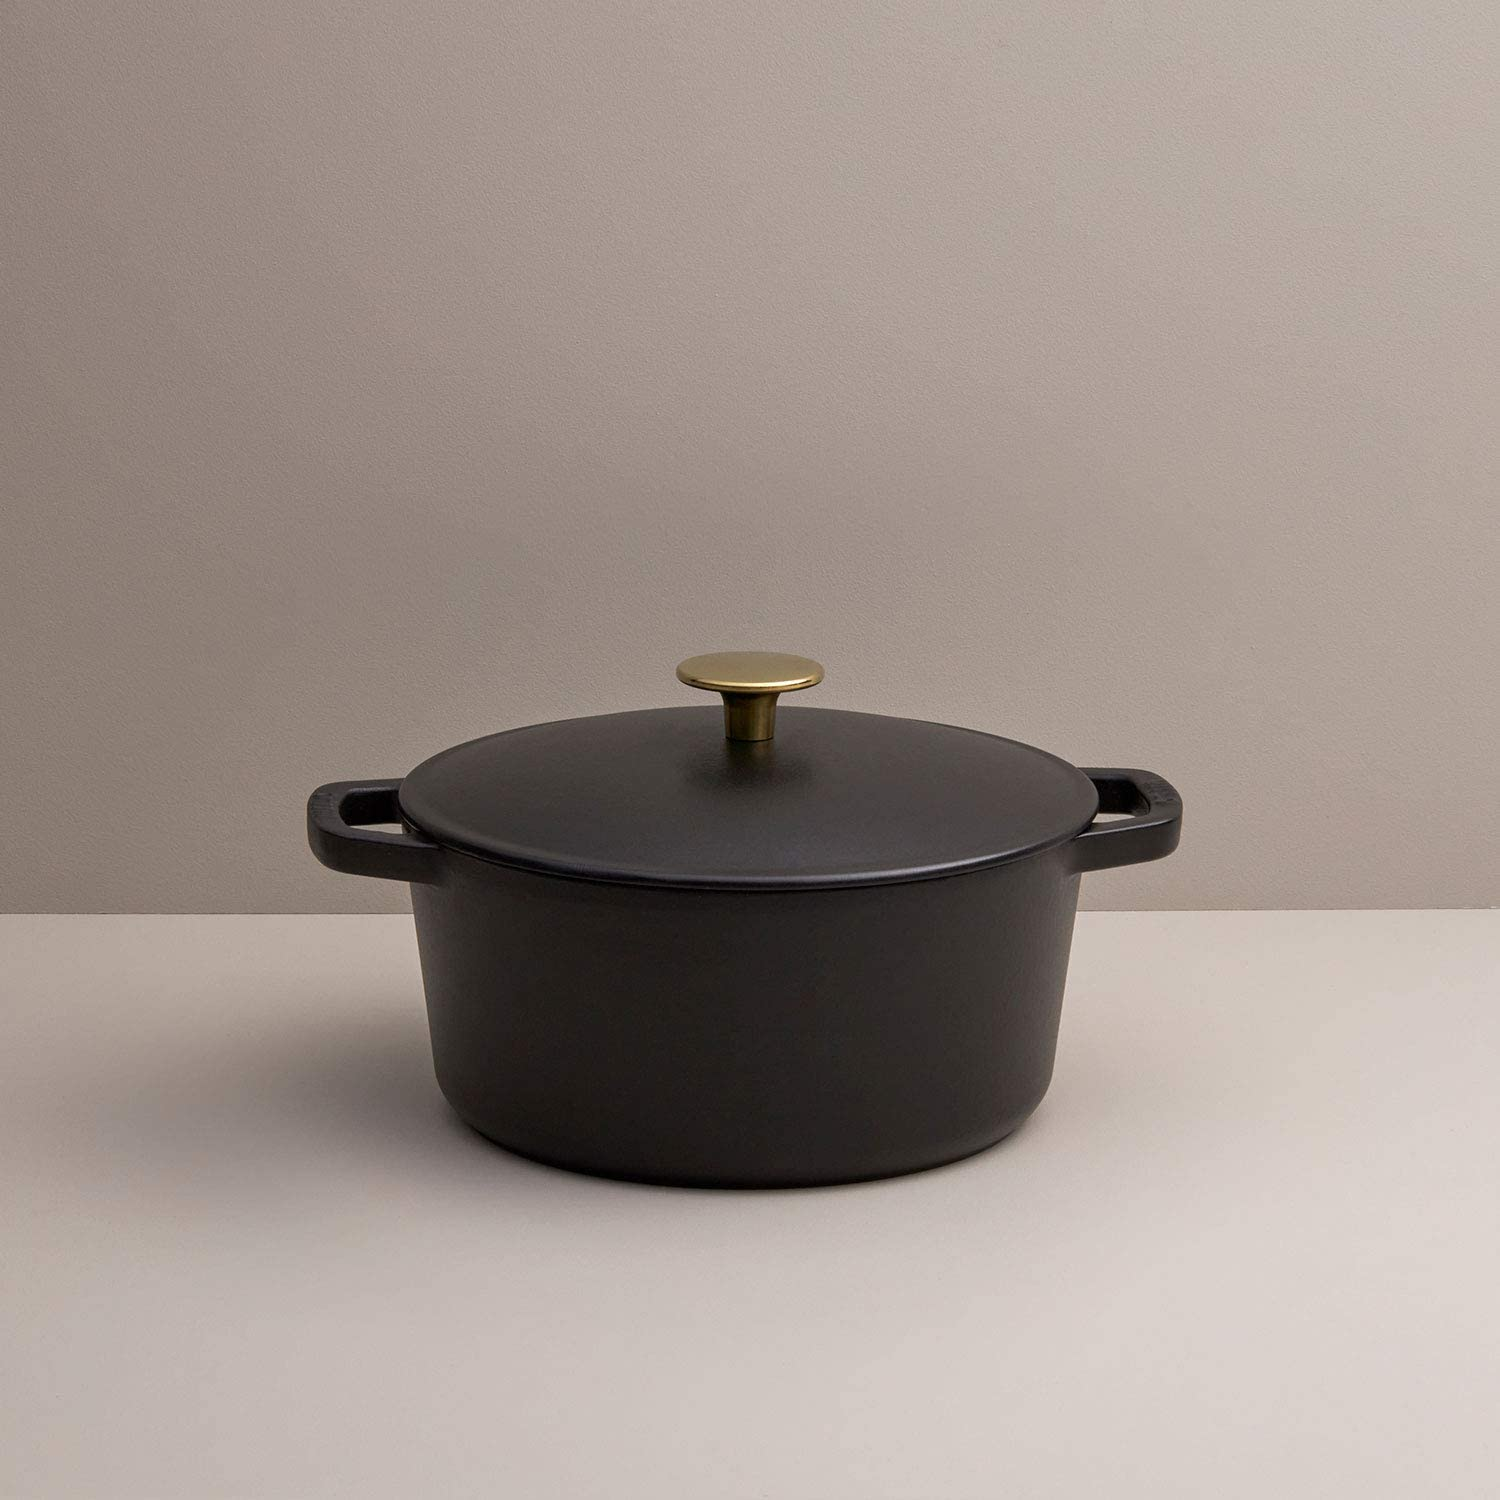 Milo Courier shipping free shipping Cast Iron Covered Dutch in Time sale 3.5-quart Enameled Oven Black